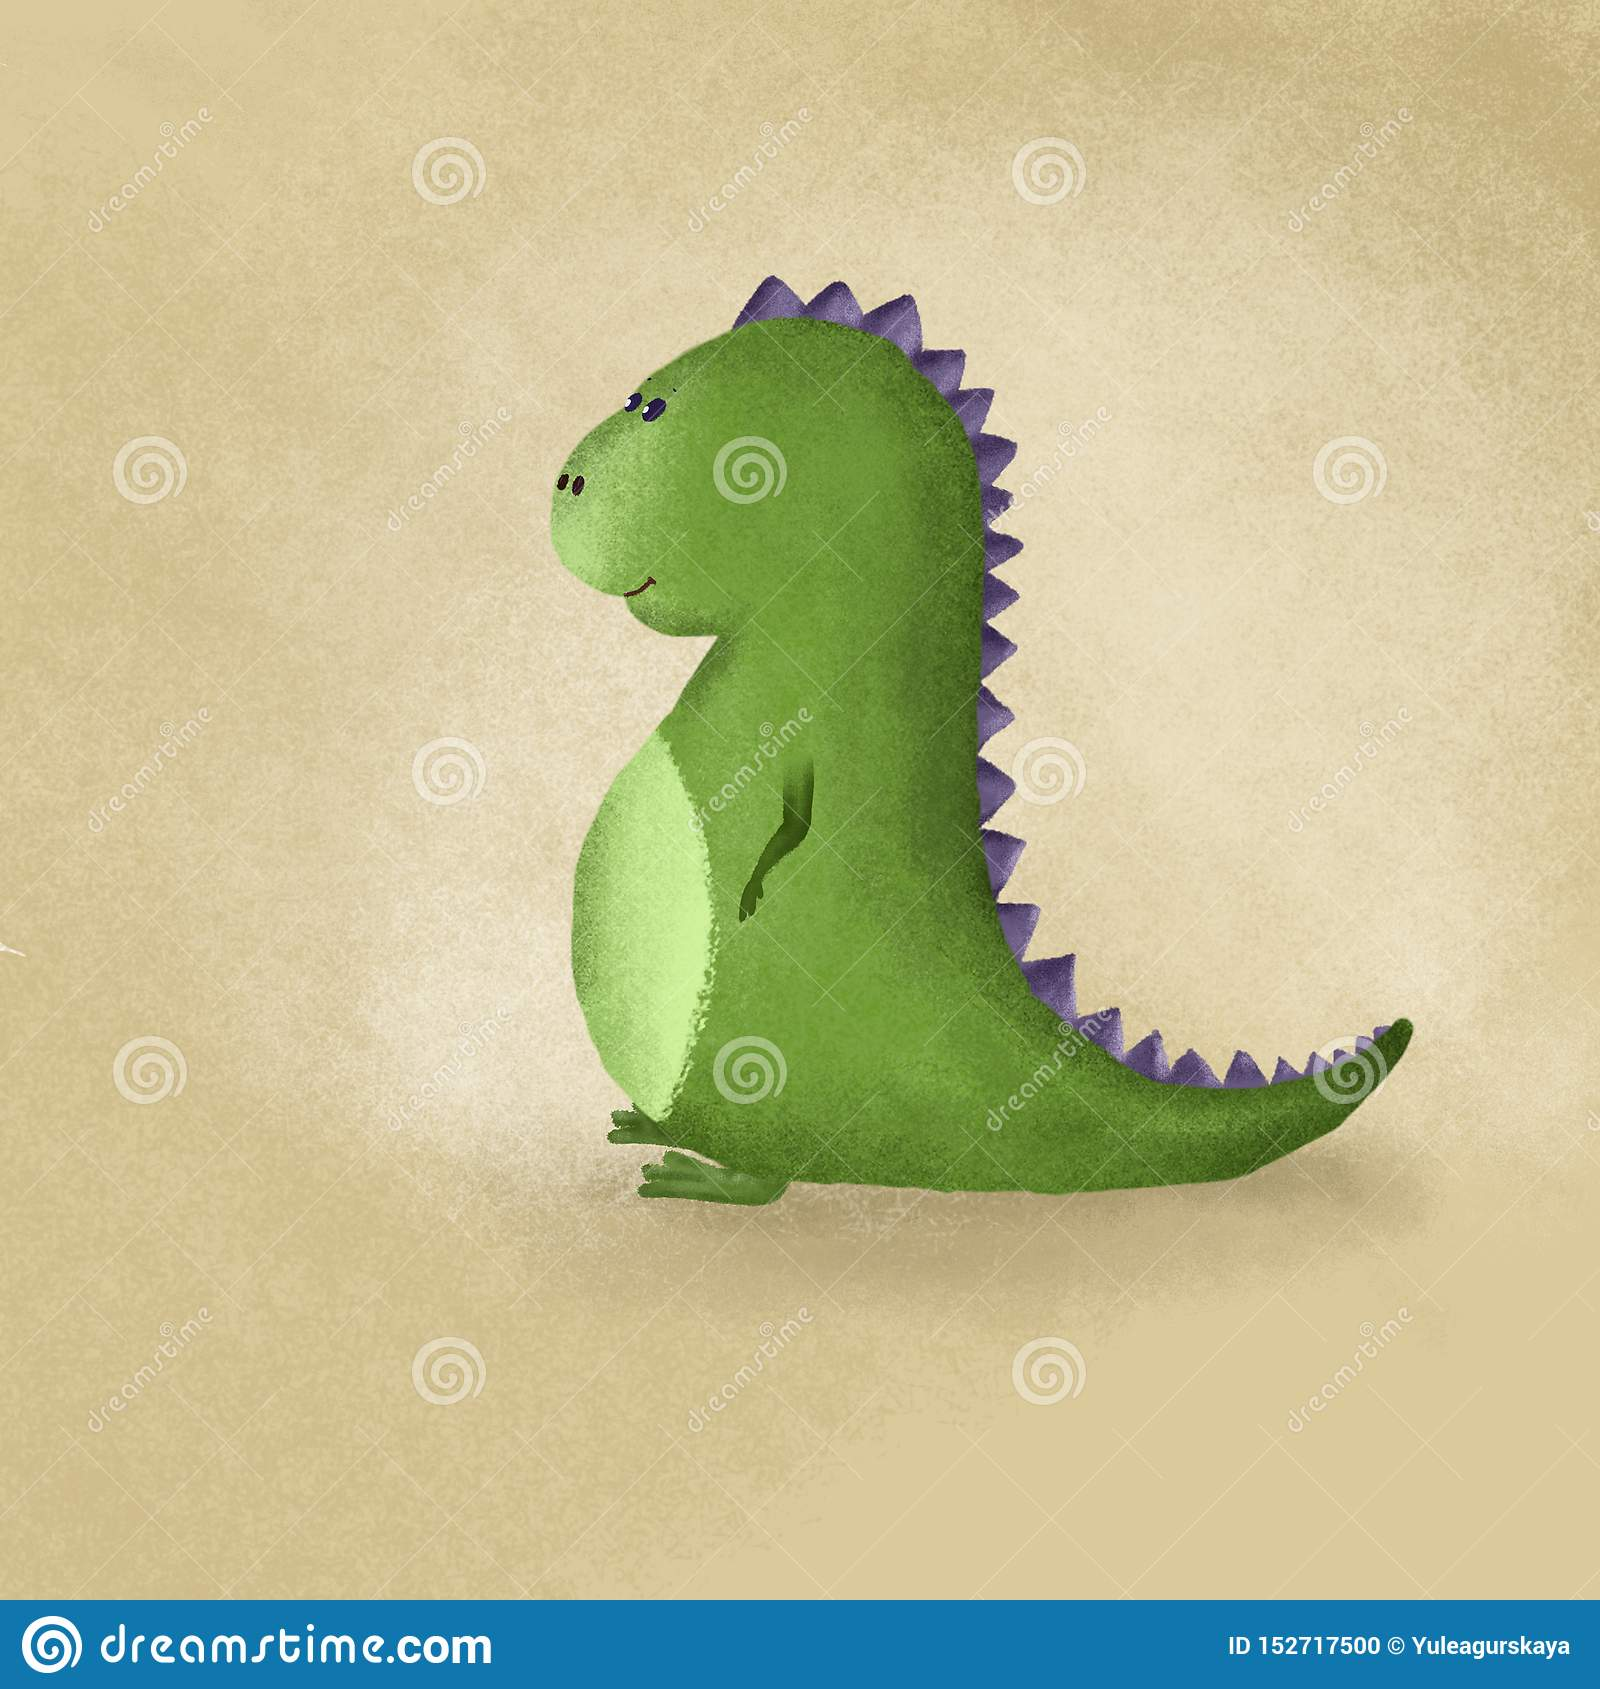 CUTE DINOSAUR MADE IN CARTOOM STYLE LOVELY AND PRETTY